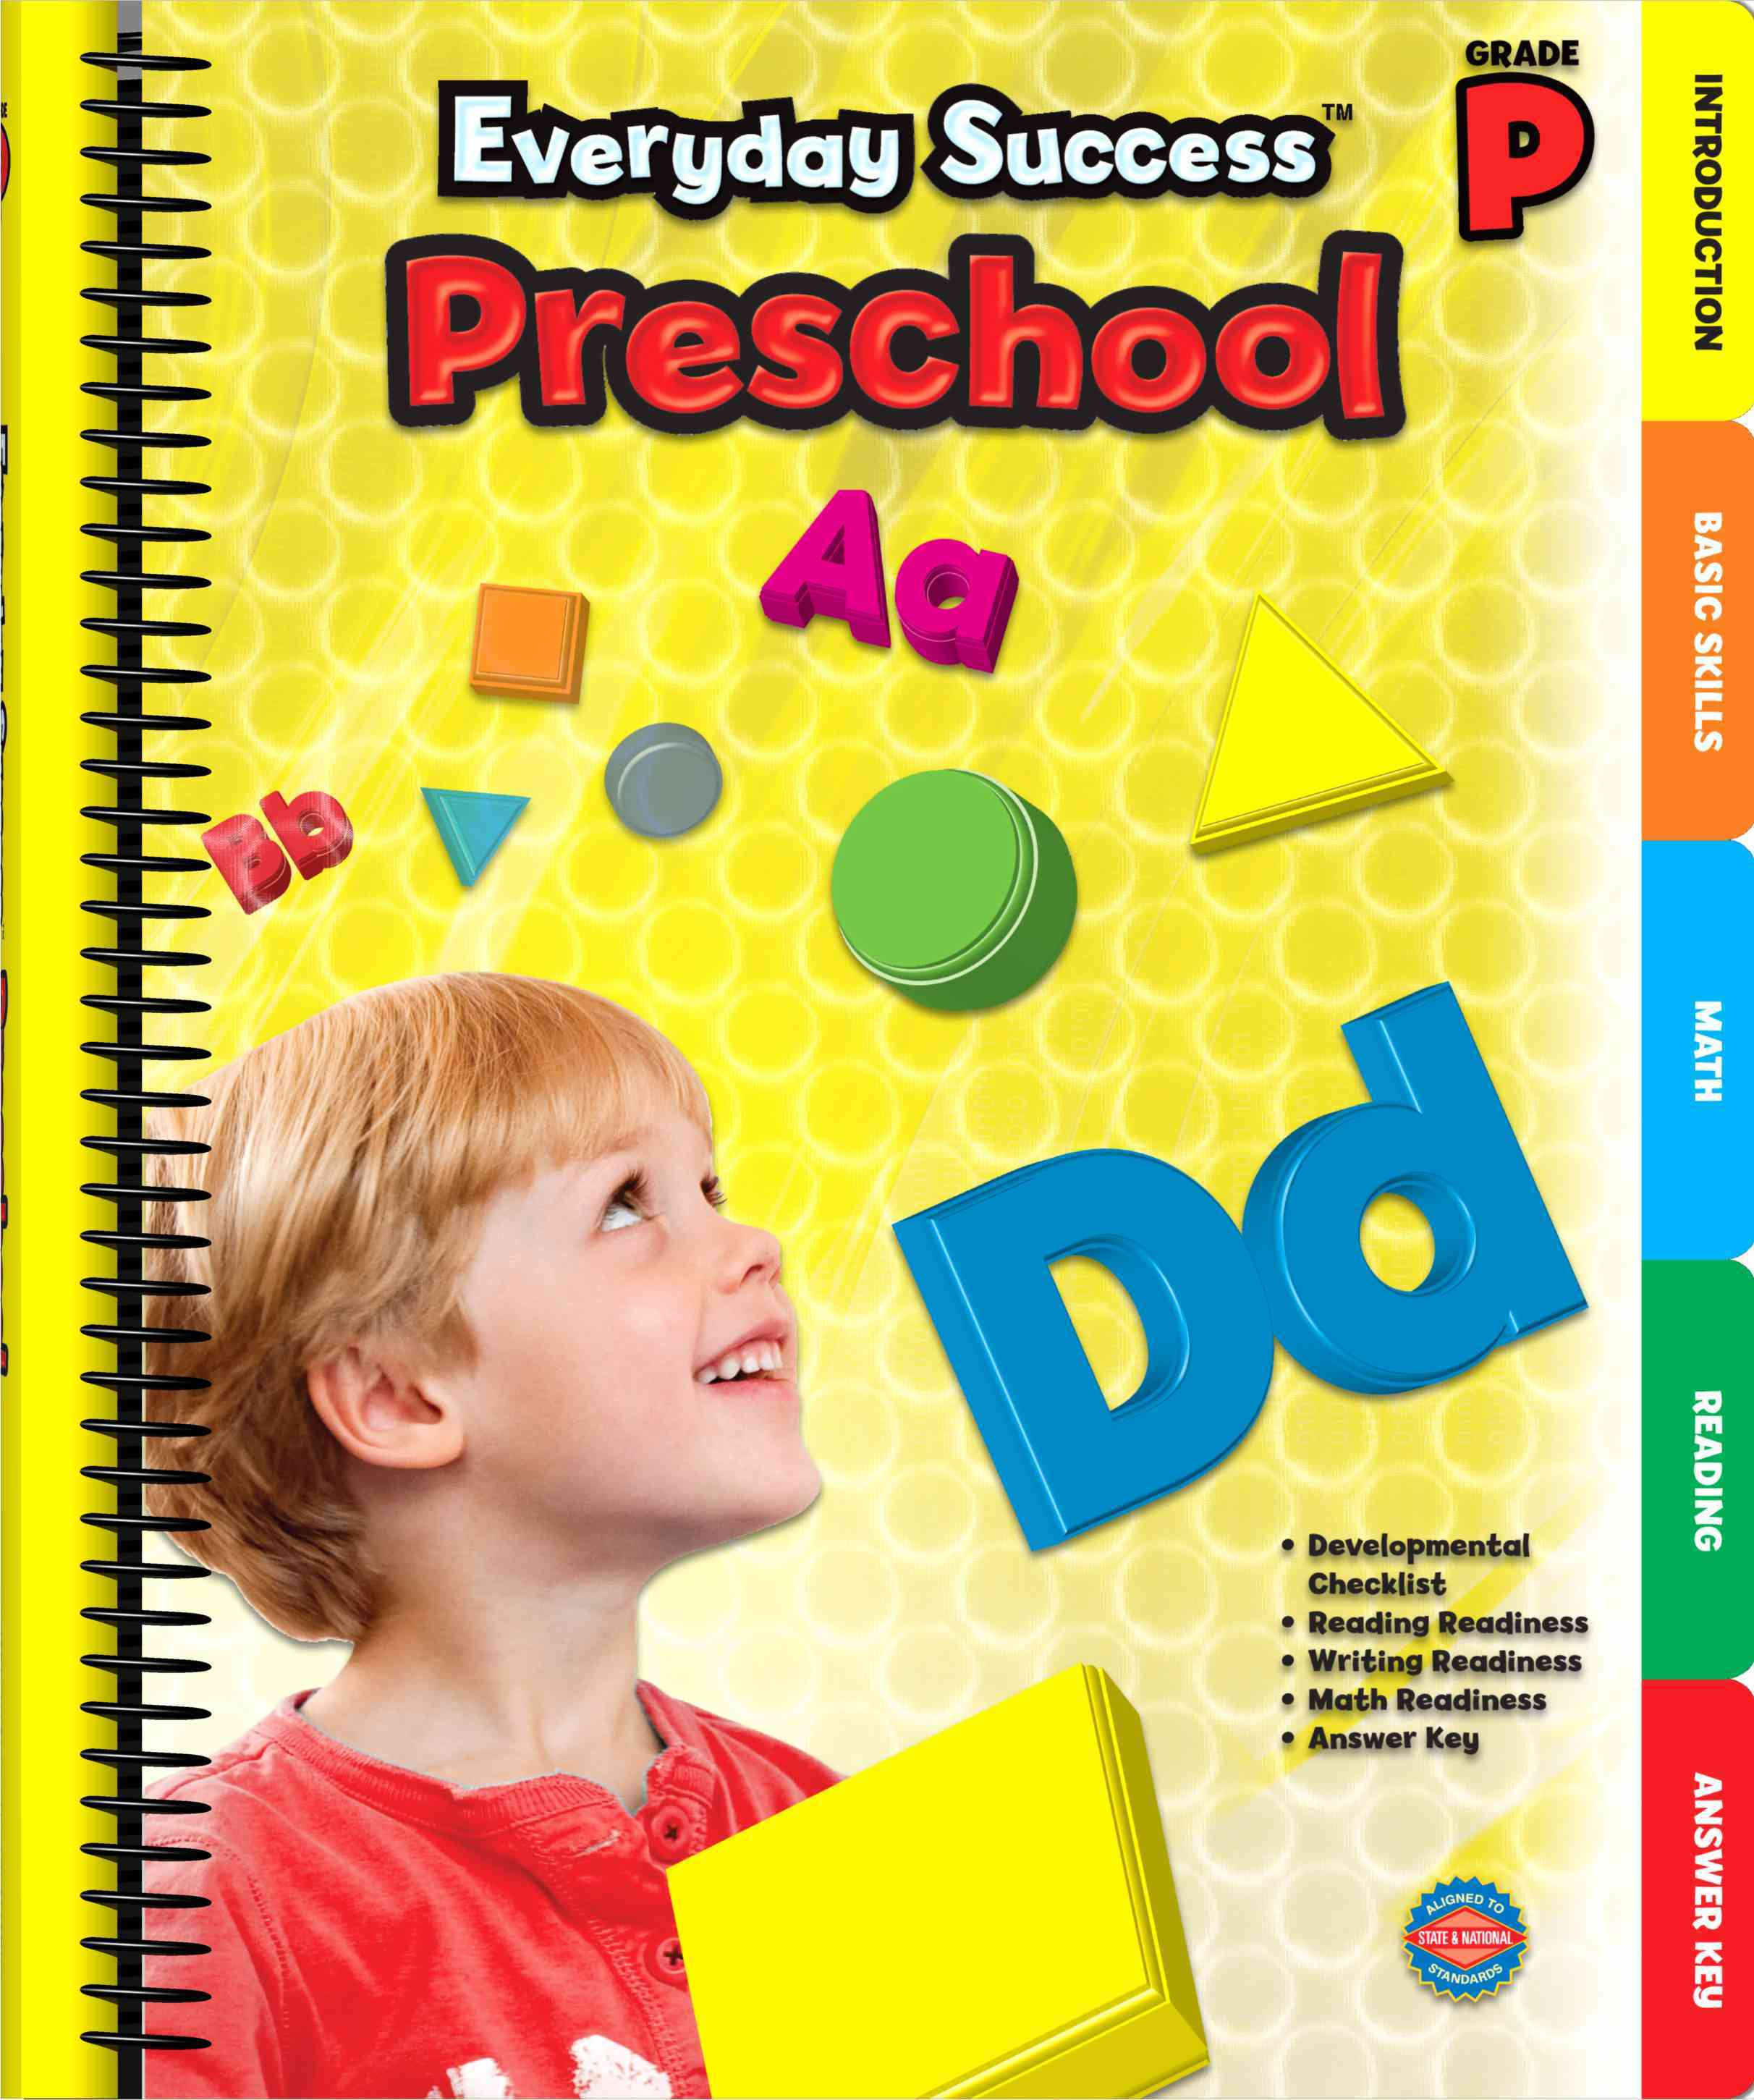 Everyday Success Preschool: Grade P (Paperback)